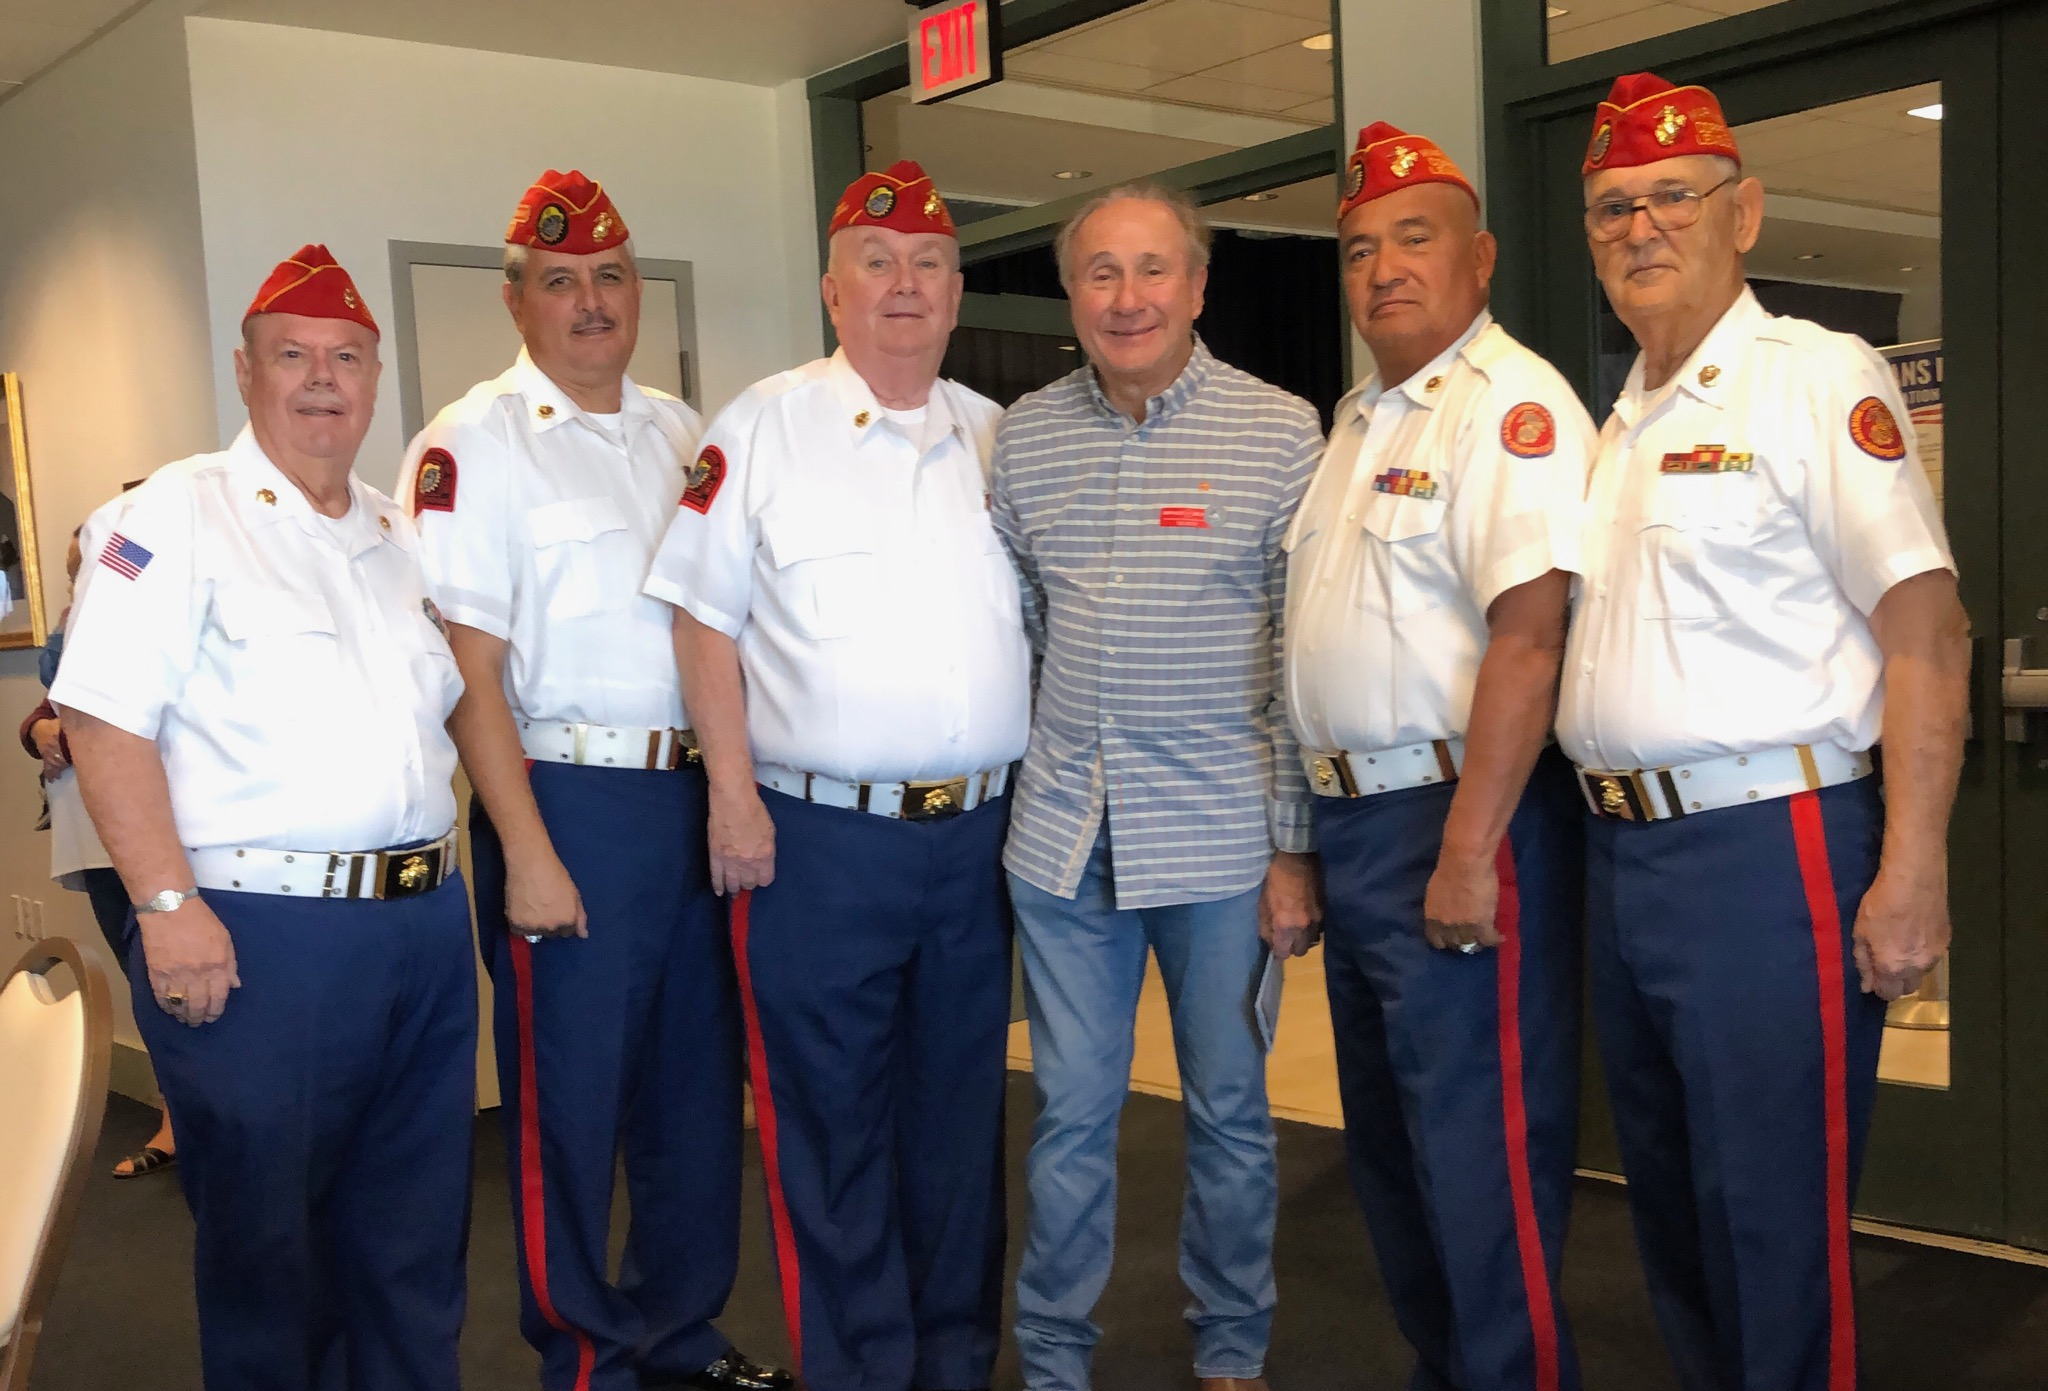 November 11, 2018   Color Guard presented colors at the Reagan Library on Veterans Day. Here with President Reagan's son, Michael.  L/R: Dave Opfer, Color Guard Commander Ruy Pena, Jr., Dick Jennings, Michael Reagan, Fausto Galvan and Ben Pfister.